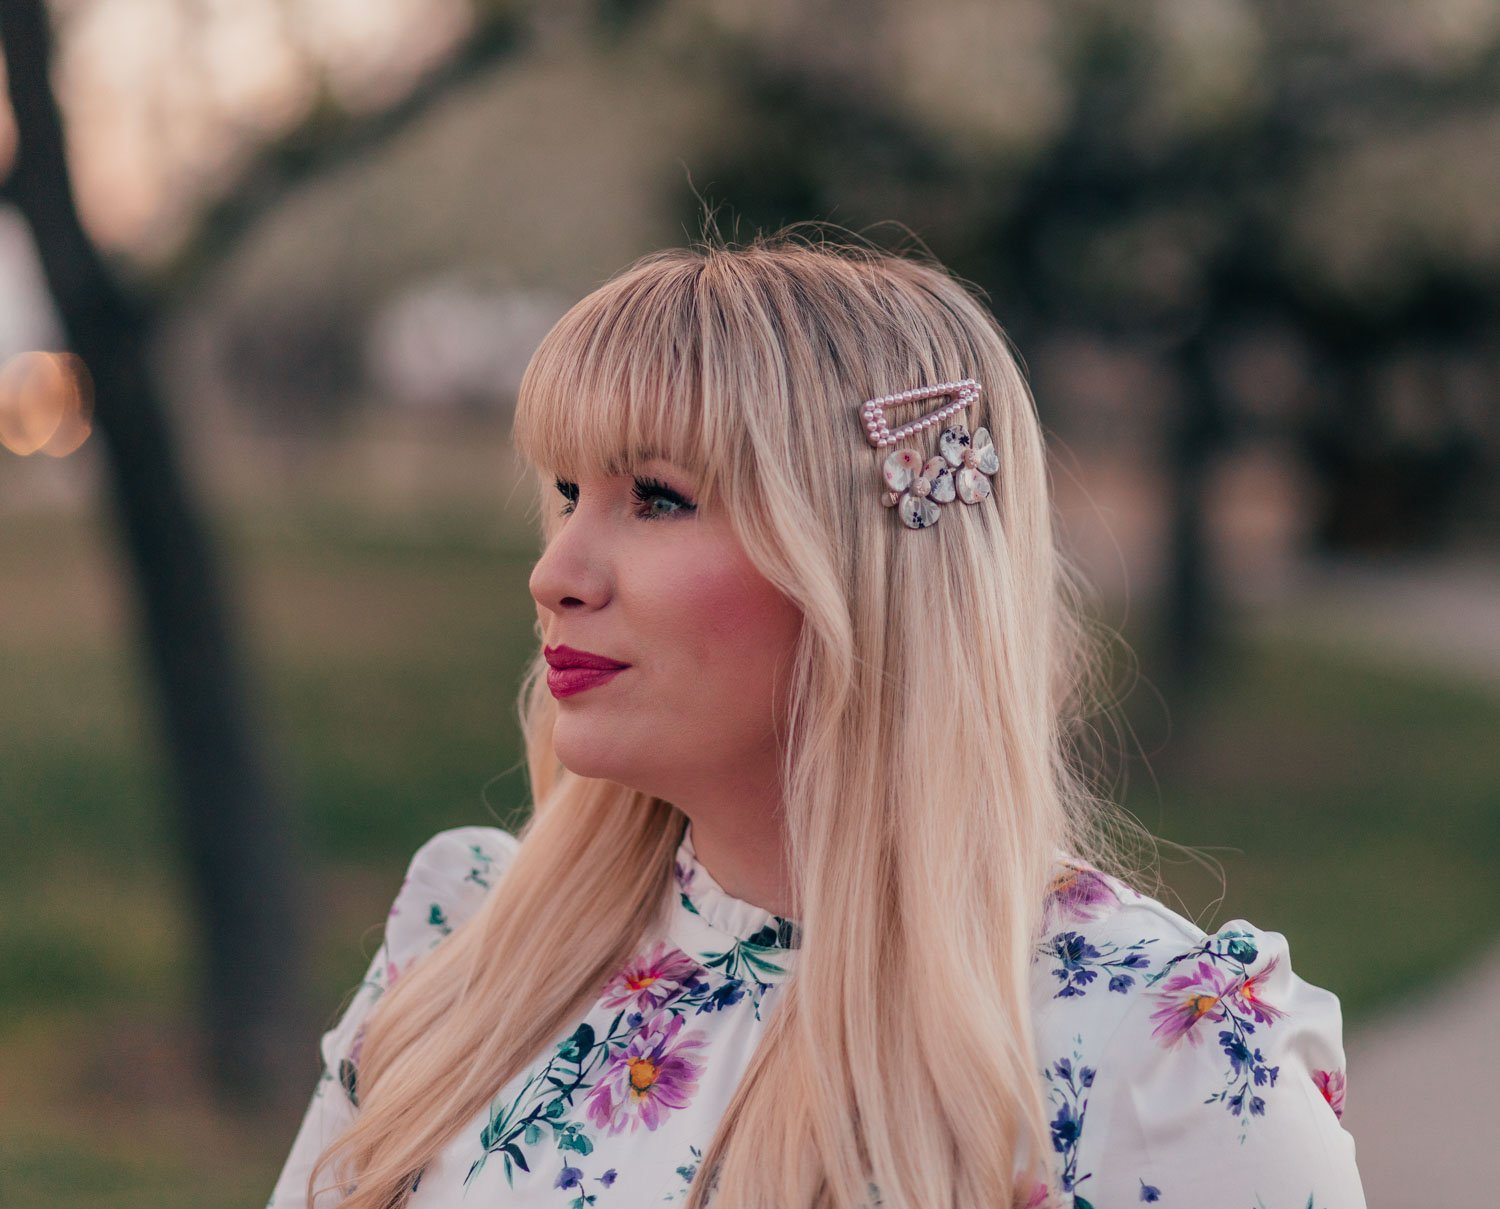 Elizabeth Hugen of Lizzie in Lace shares her Spring Wardrobe Essentials including these feminine hair clips